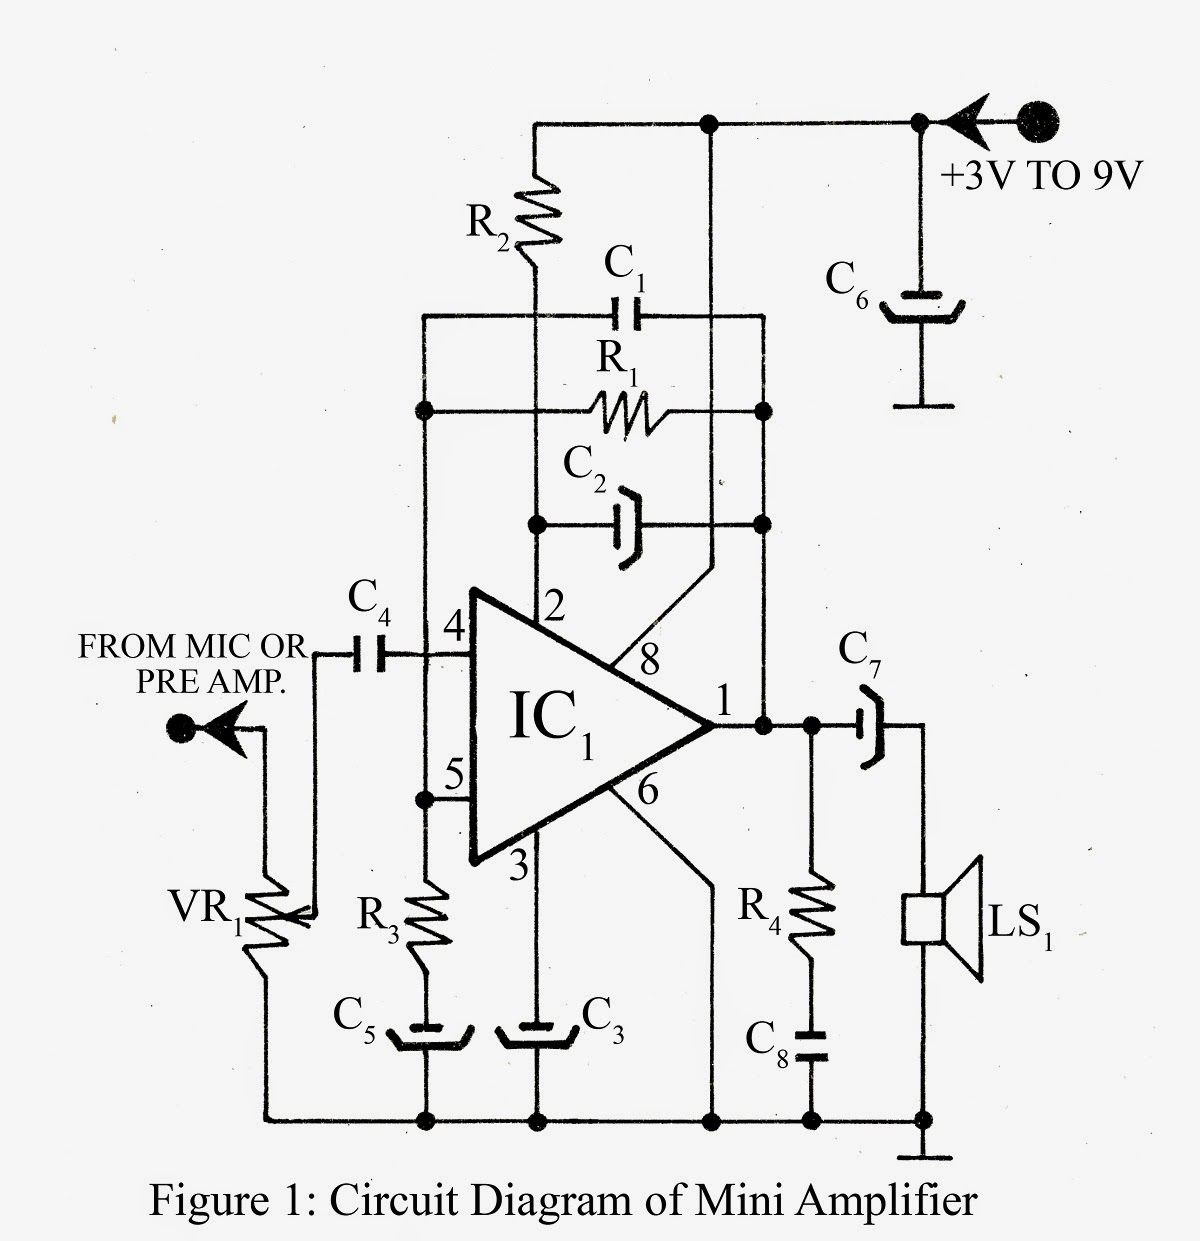 hight resolution of mini amplifier circuit diagram electronic projects ic based audio mini amplifier